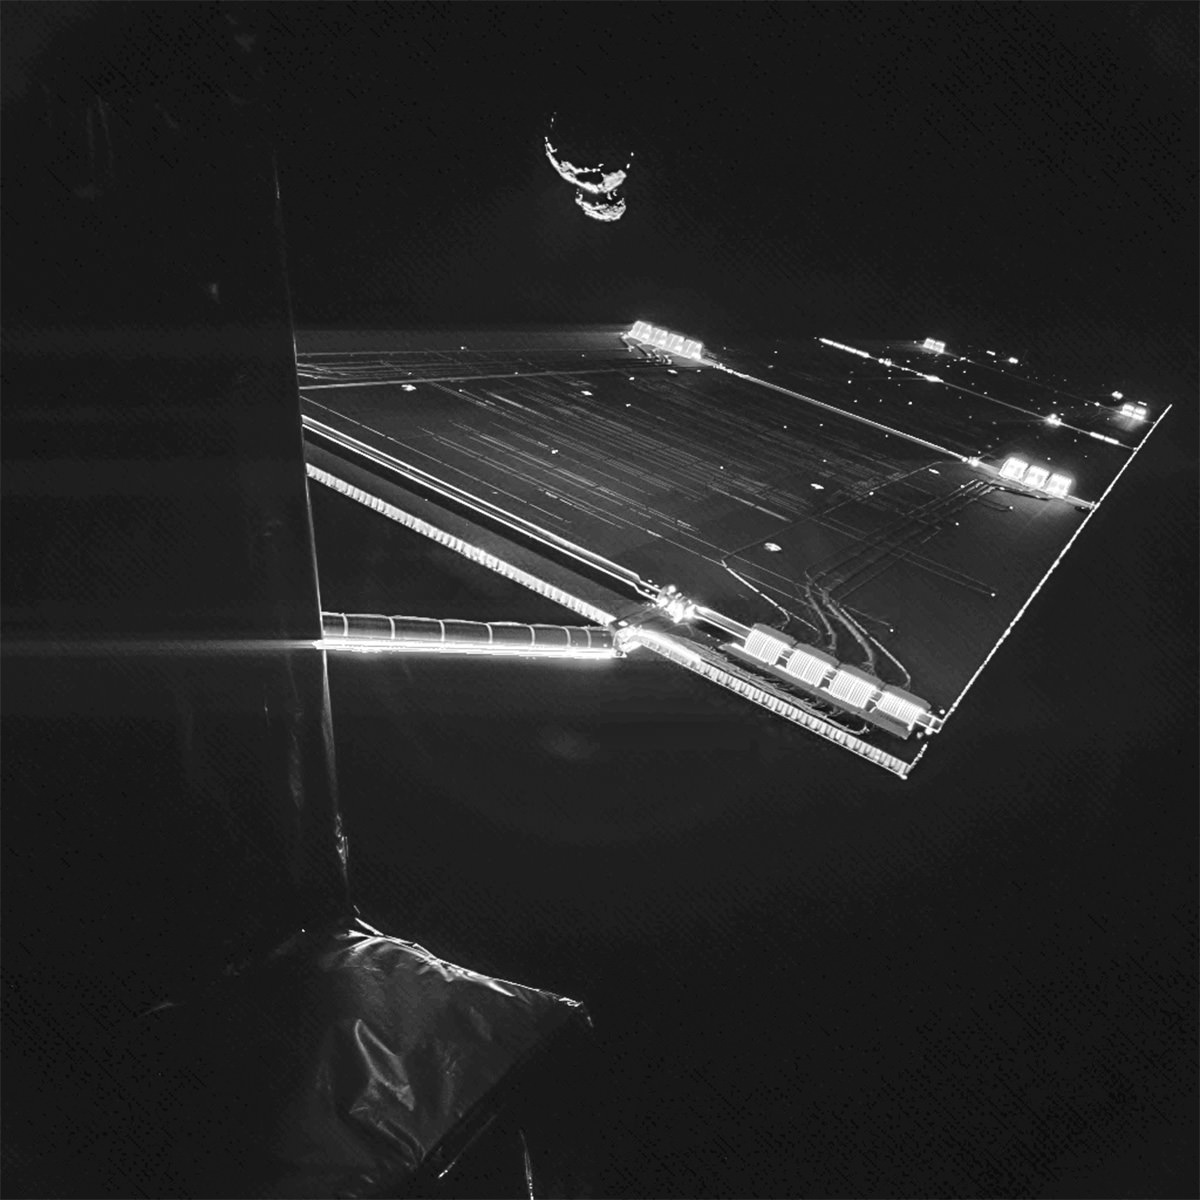 Image of Rosetta's solar array and comet 67P/C-G taken by Philae on Sept. 7, 2014 (ESA/Rosetta/Philae/CIVA)